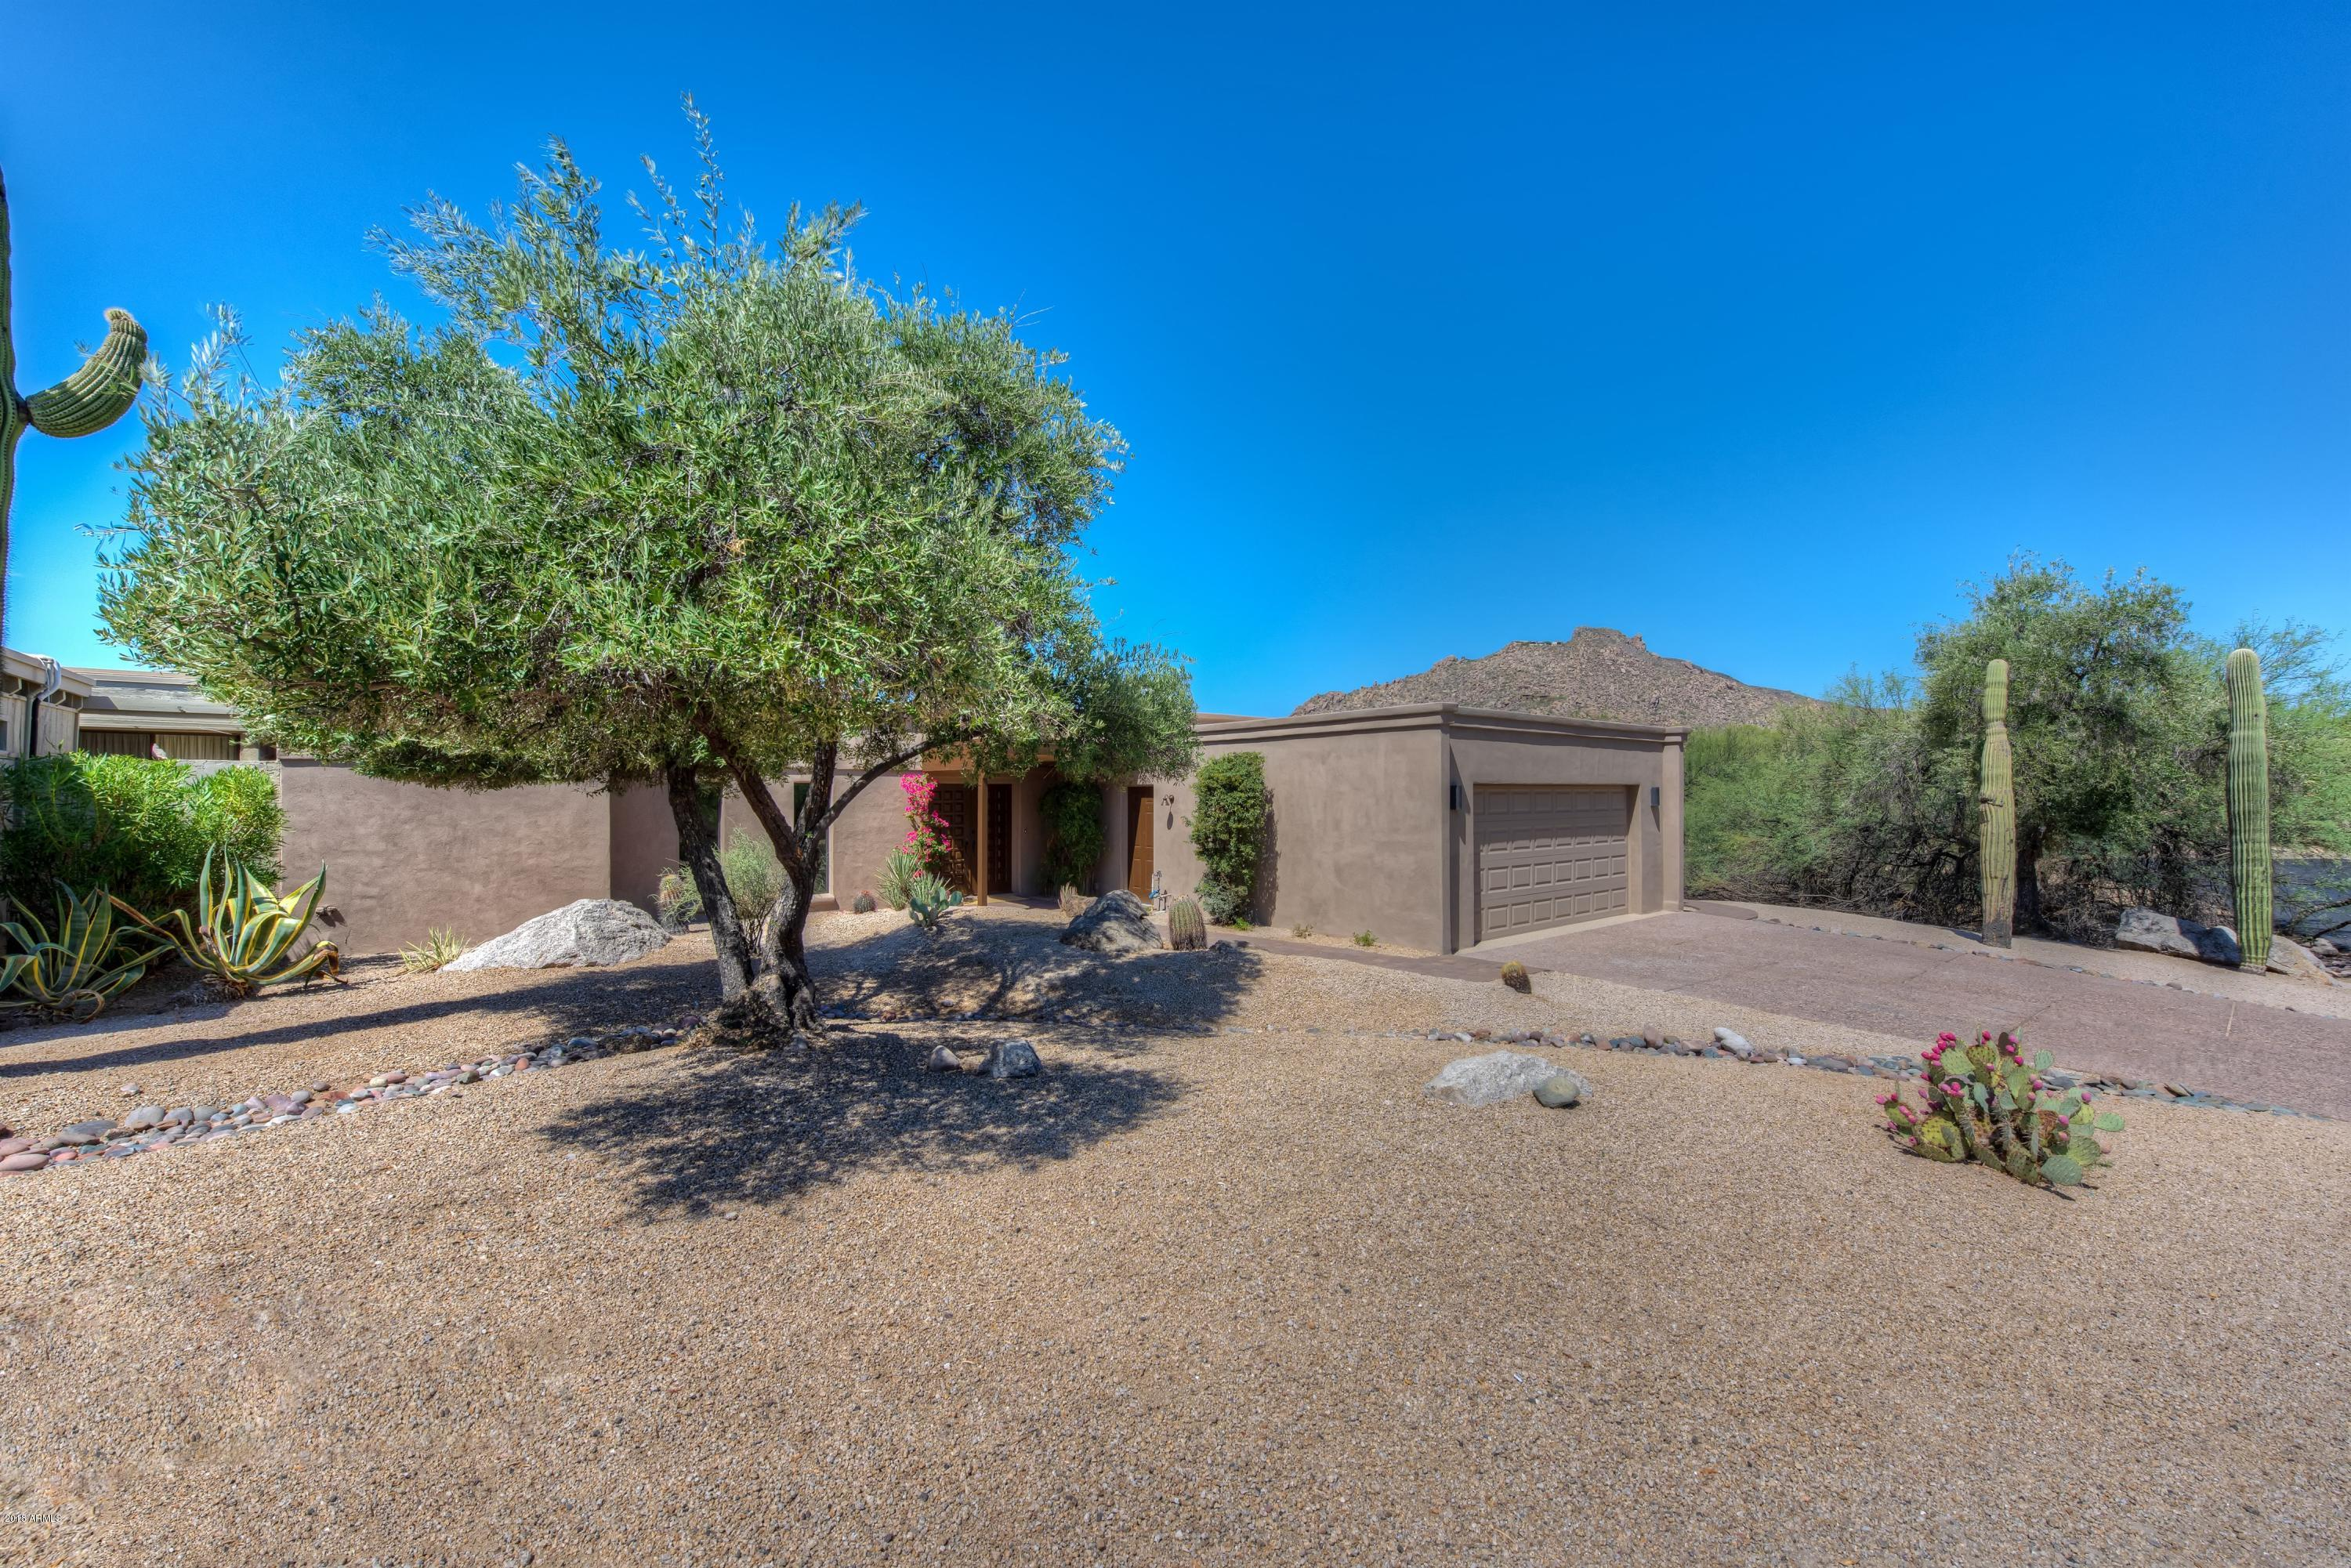 MLS 5796284 1151 E BEAVER TAIL Trail, Carefree, AZ Carefree AZ Luxury